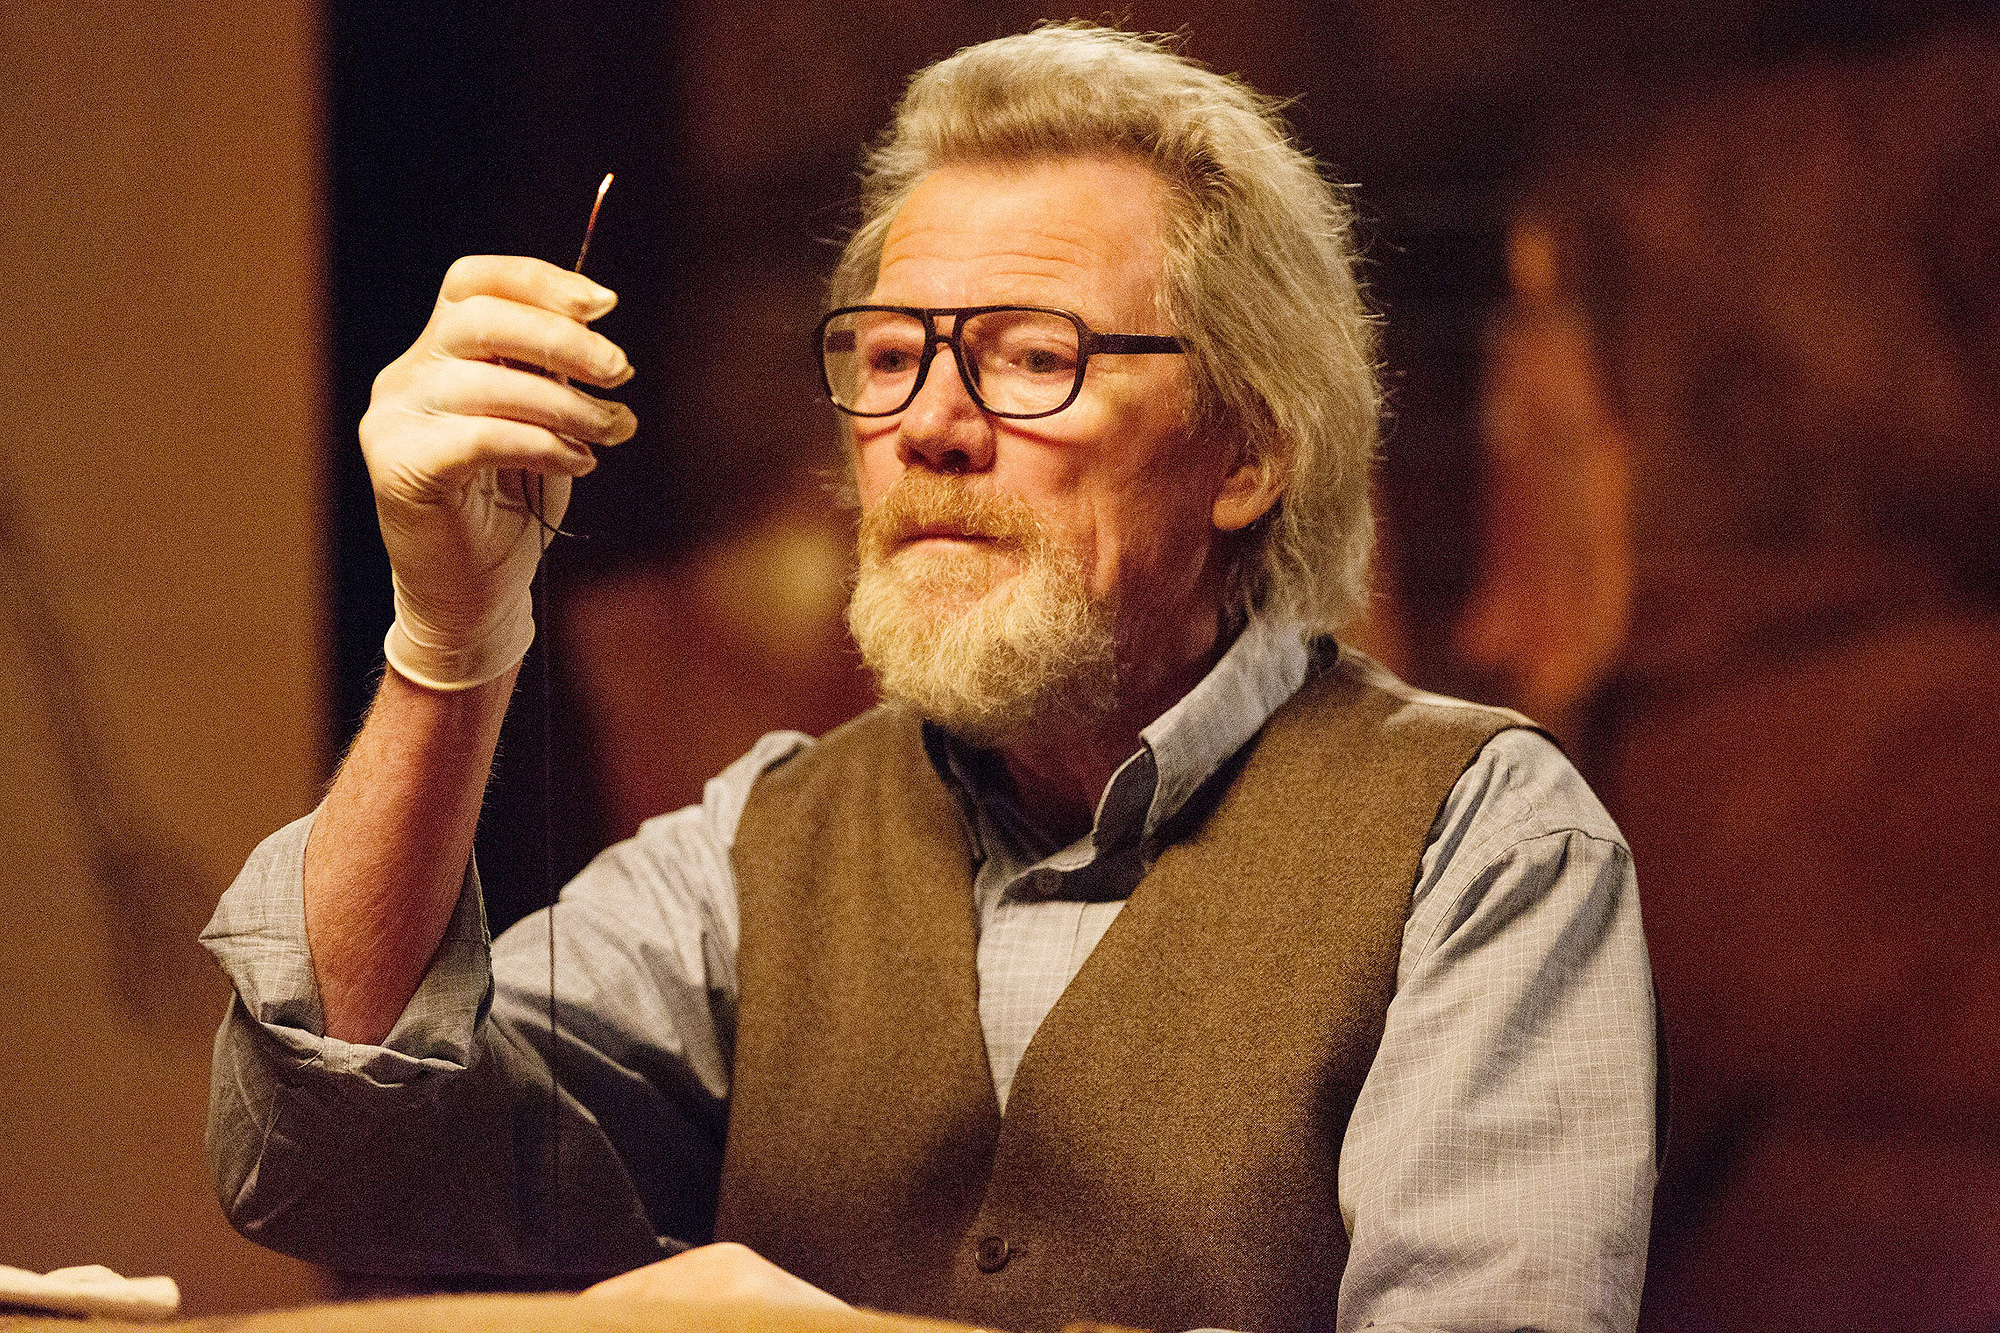 TUSK, Michael Parks, 2014. ©A24/courtesy Everett Collection